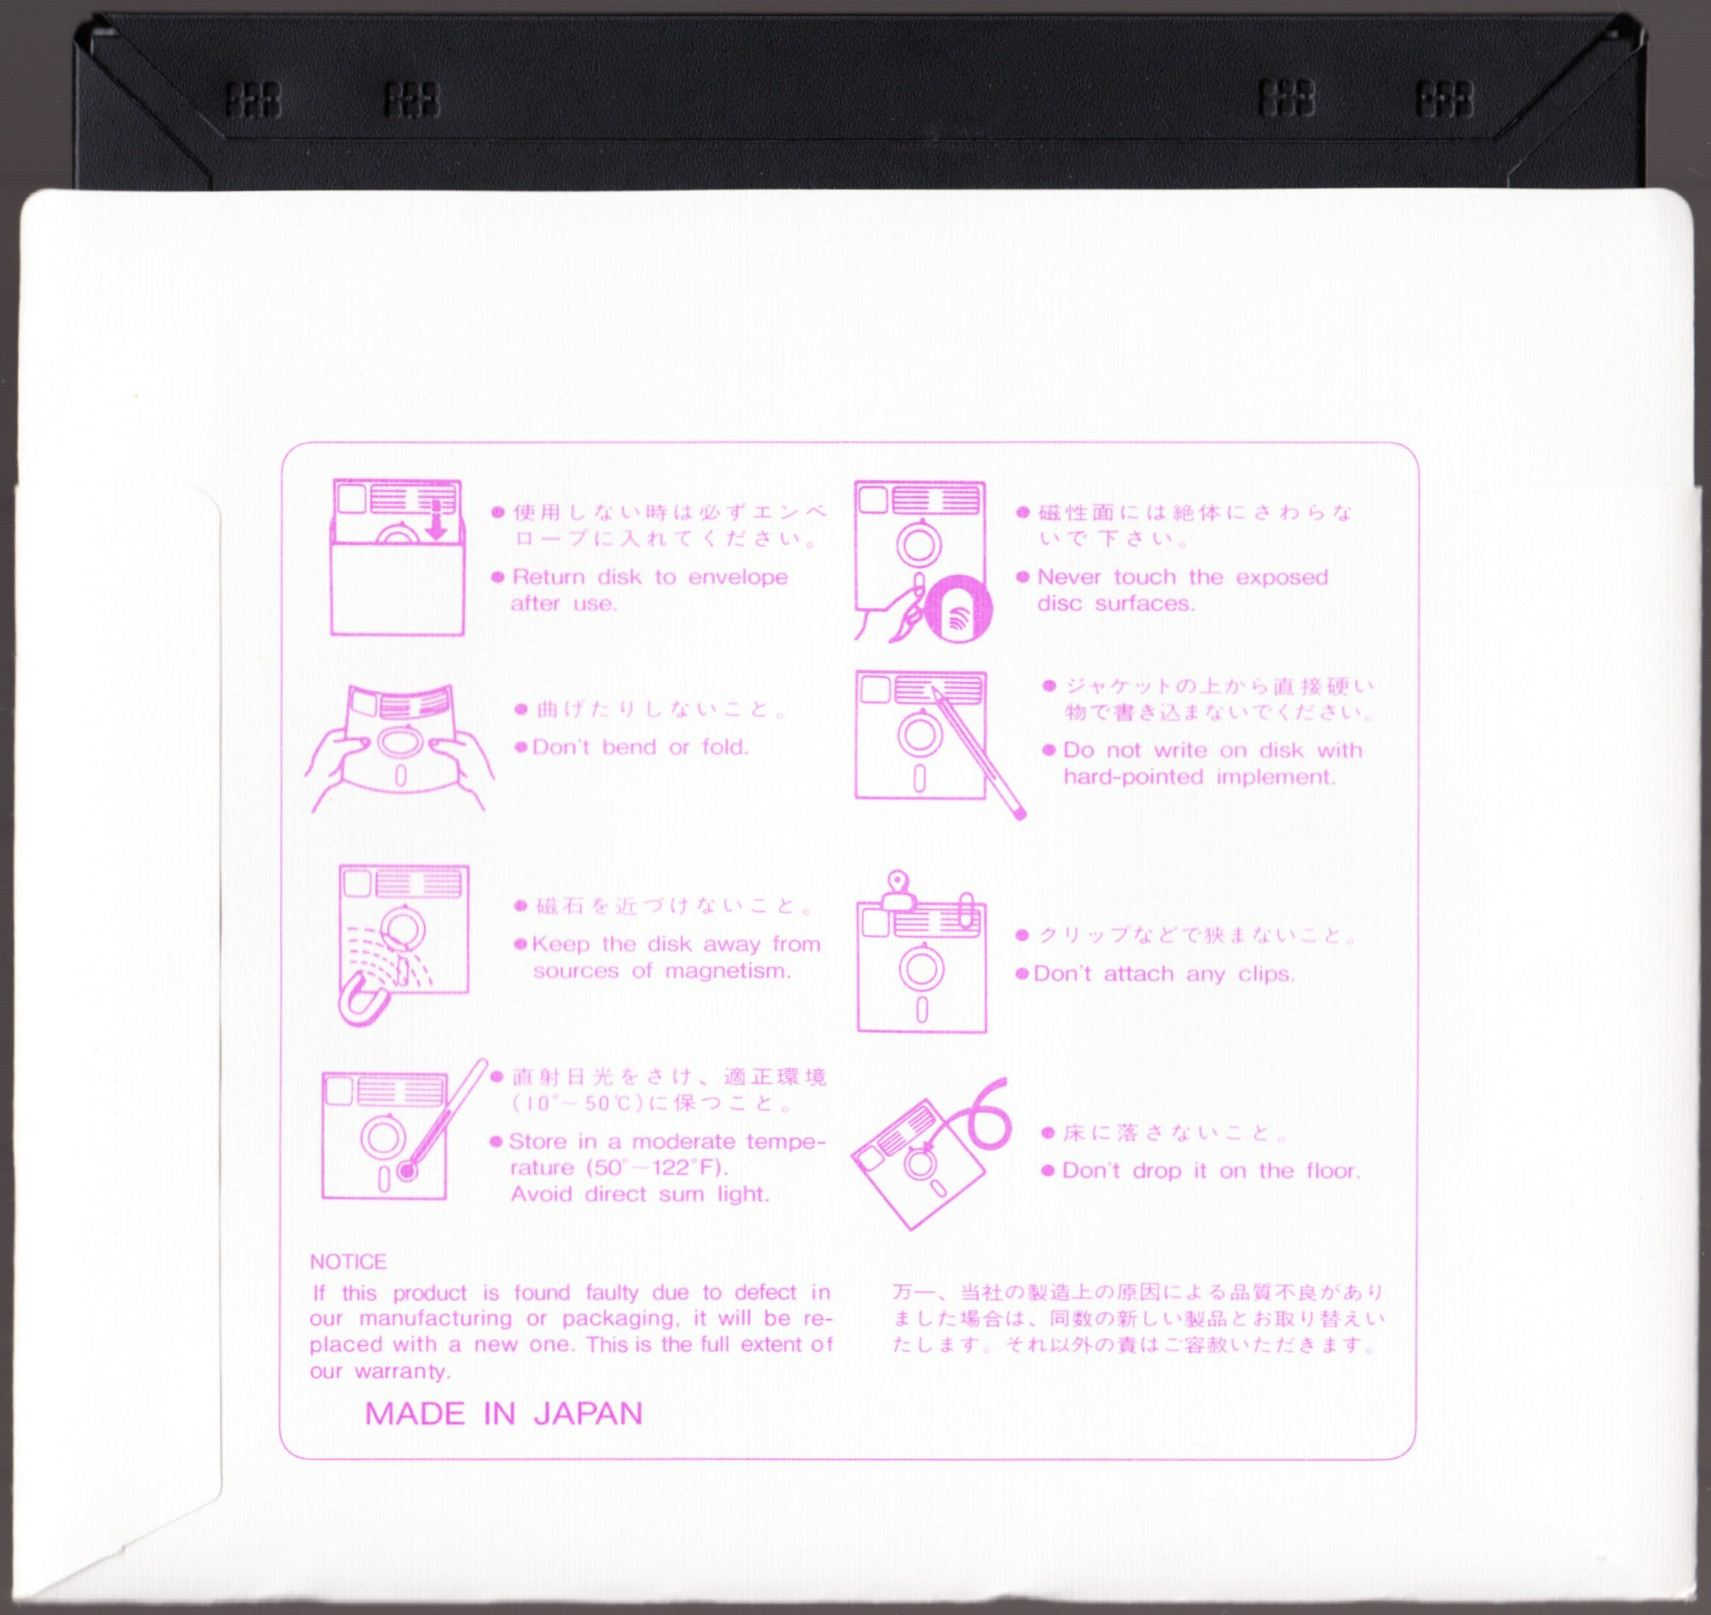 Game - Dungeon Master II - JP - PC-9801 - 5.25-inch - Disk C Data Disk - Back - Scan